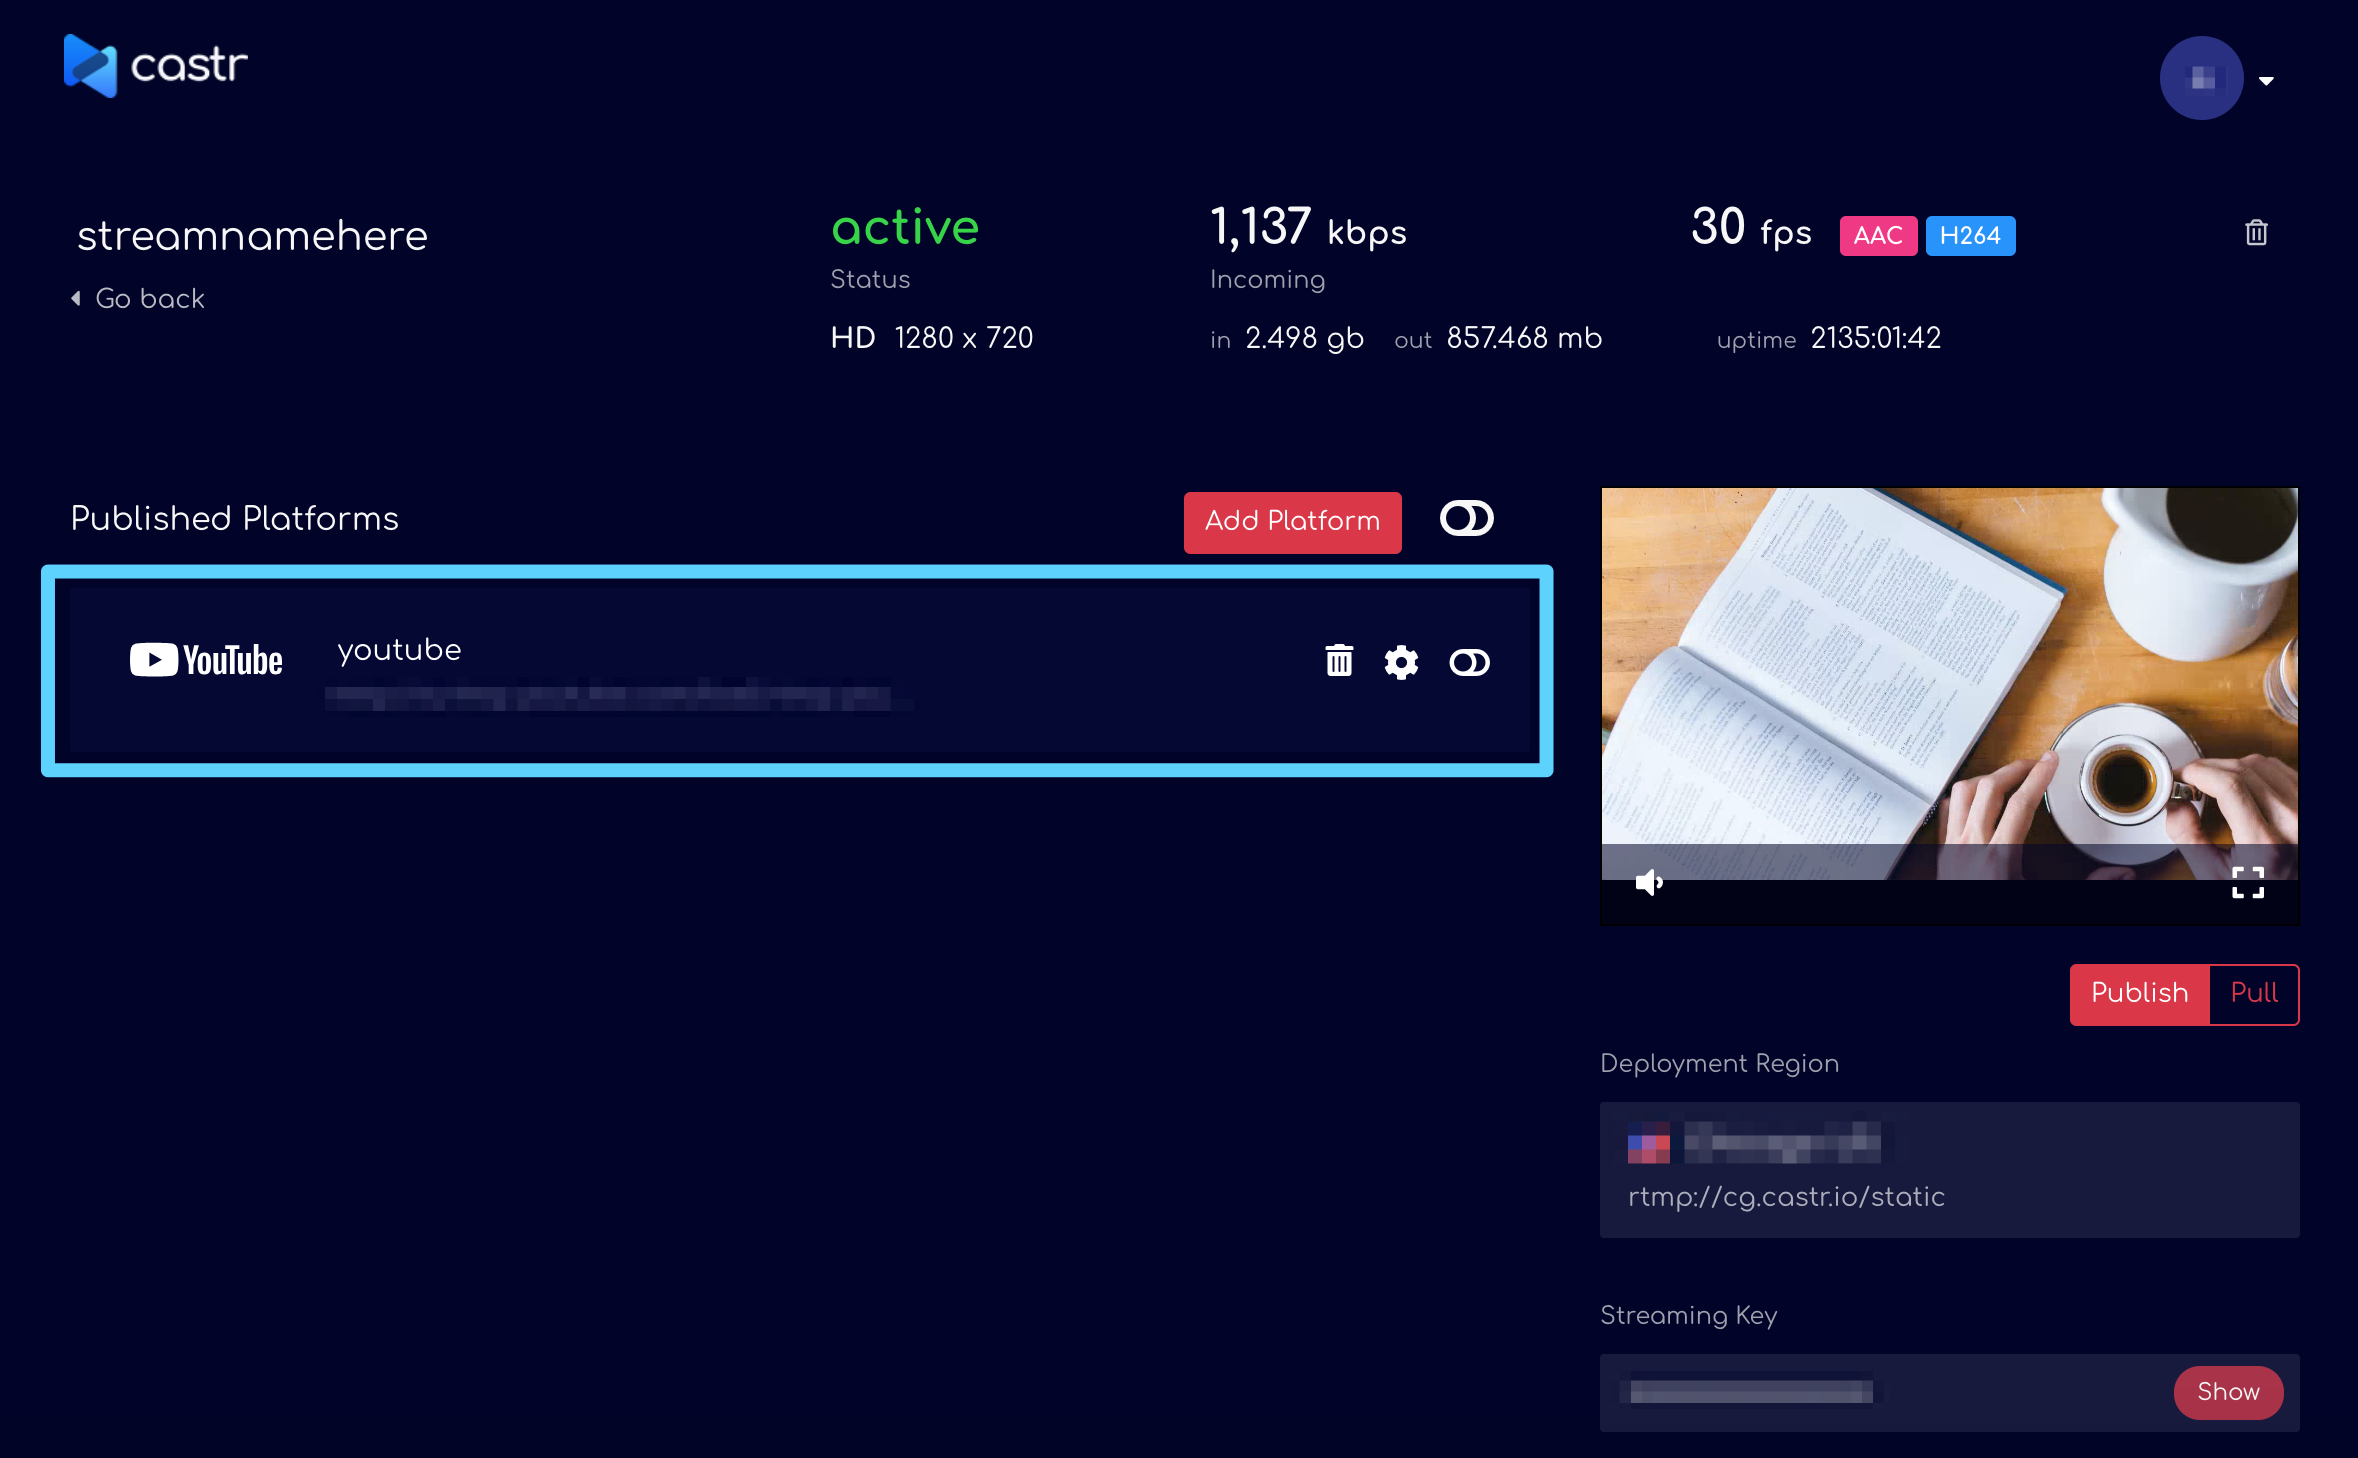 Stream Live To Facebook & Youtube Simultaneously Using Castr